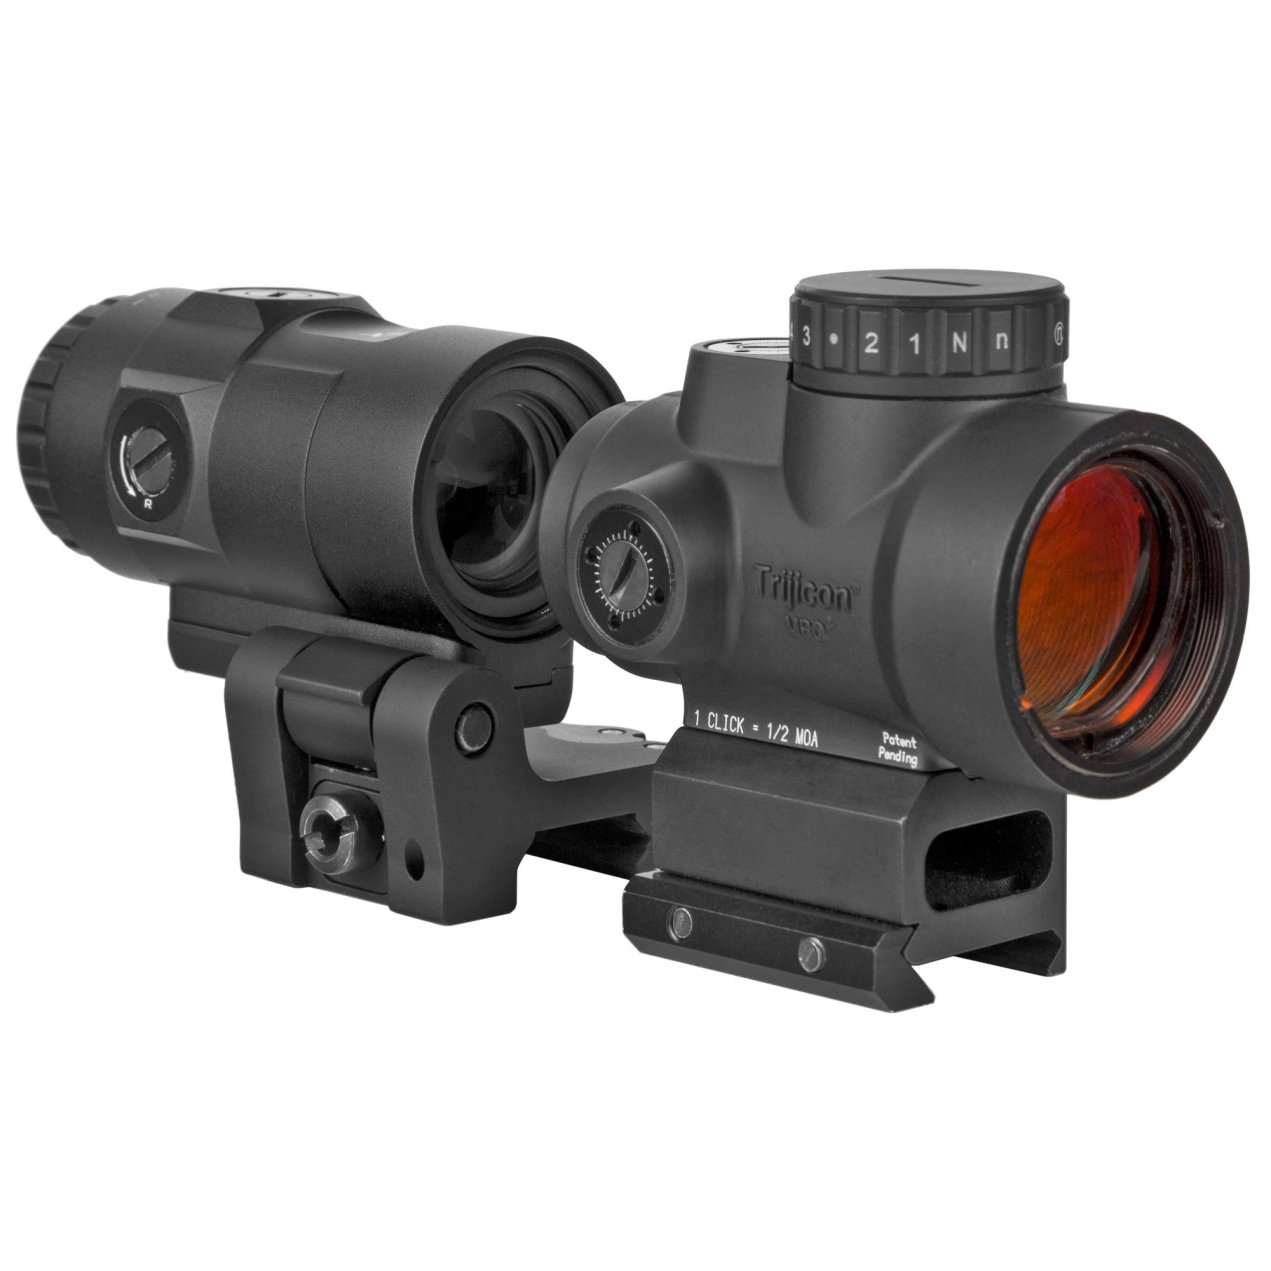 Trijicon MRO HD W: 3X Magnifier Review